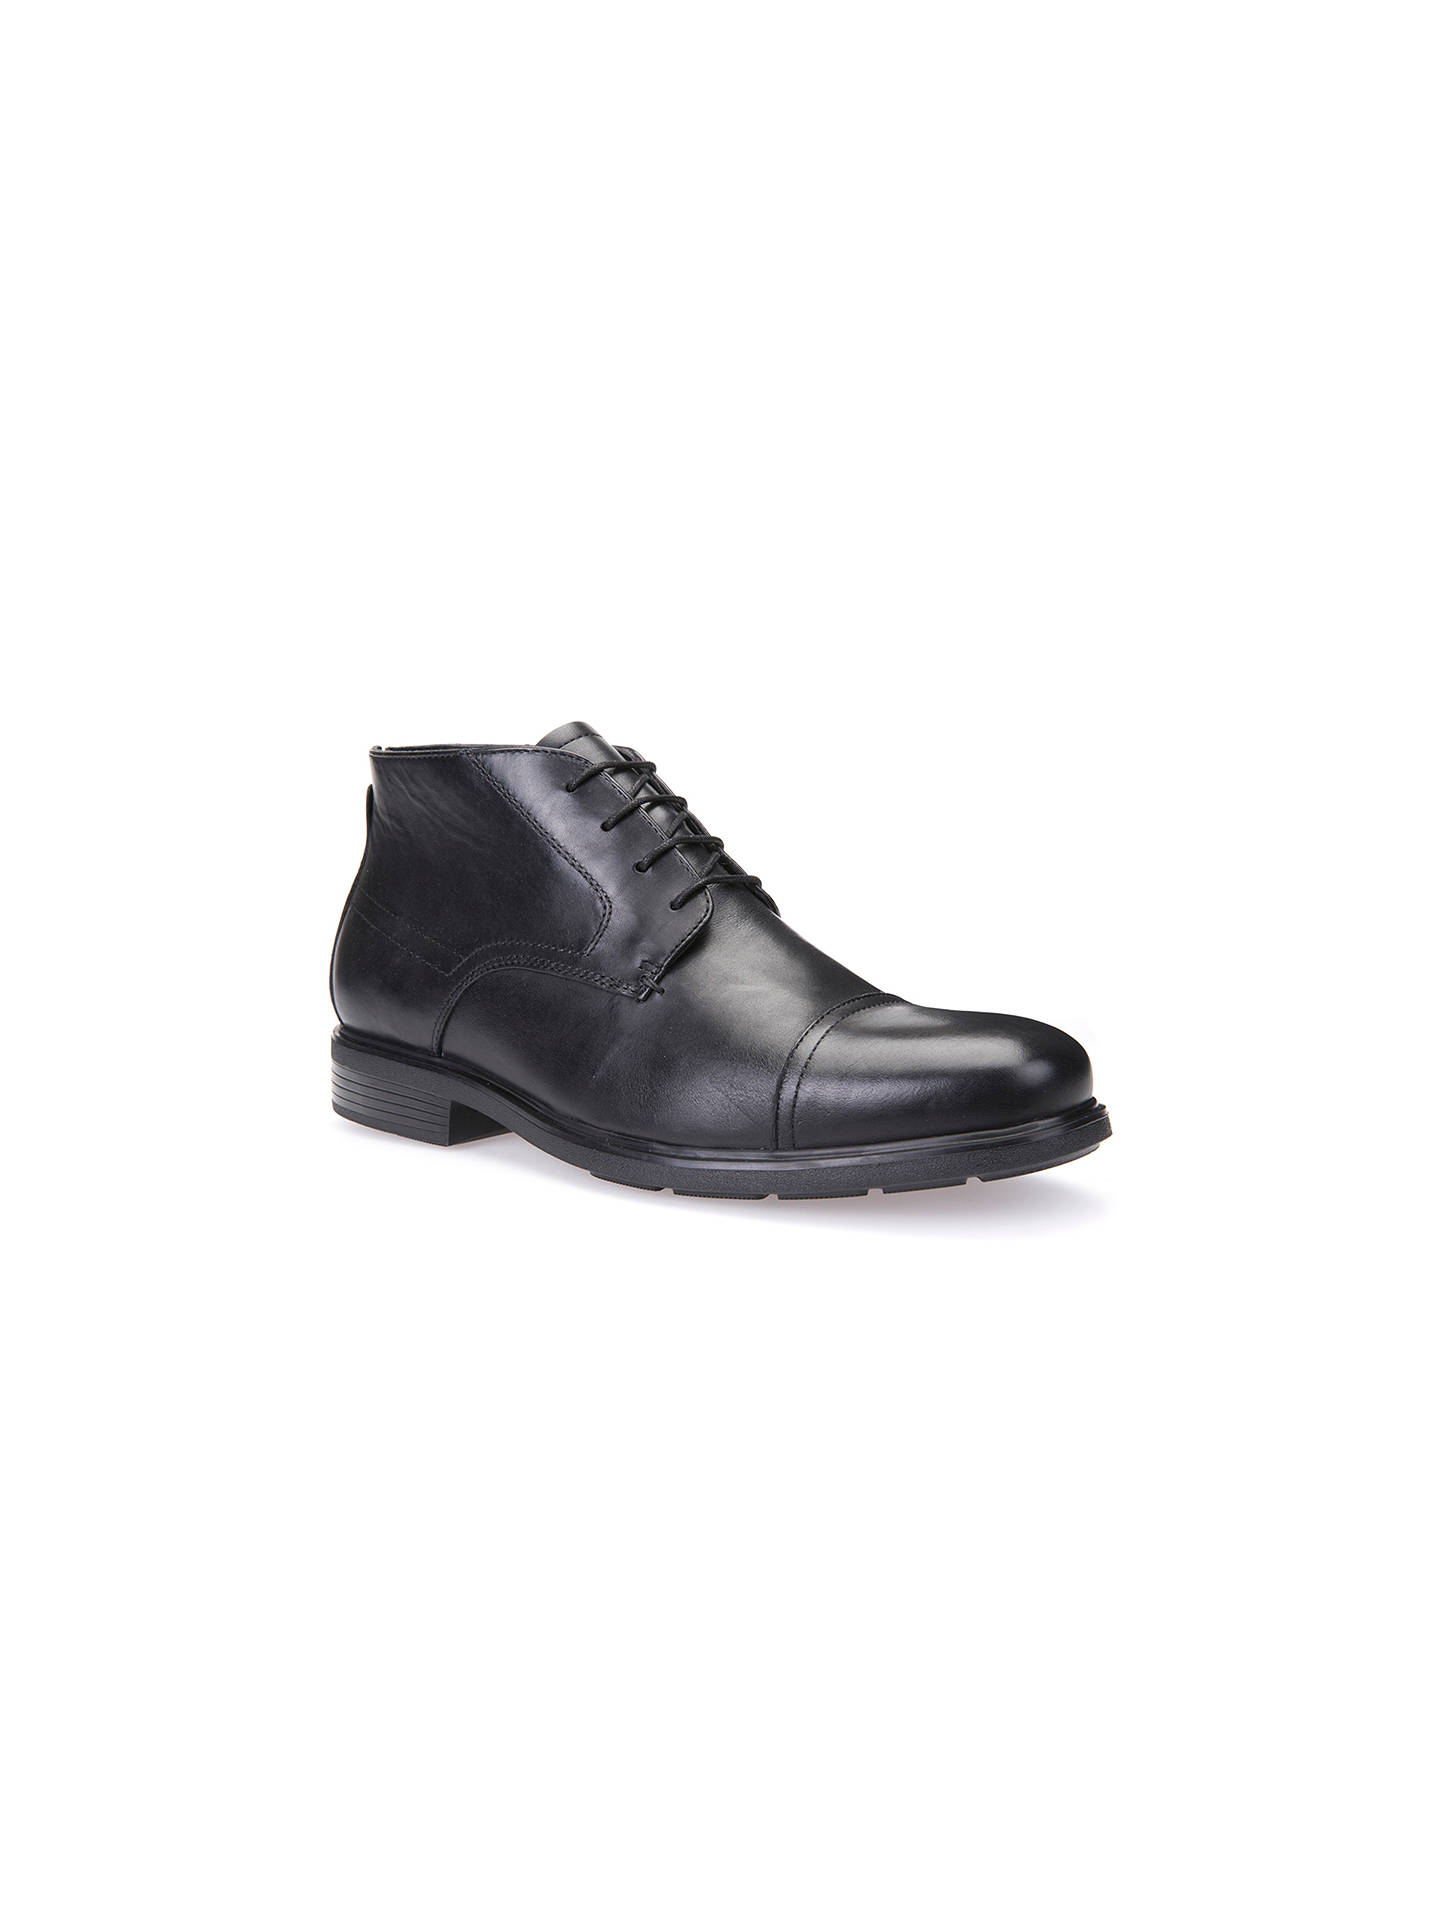 release date e037f 63ed2 Geox Dublin Leather Boots, Black at John Lewis & Partners